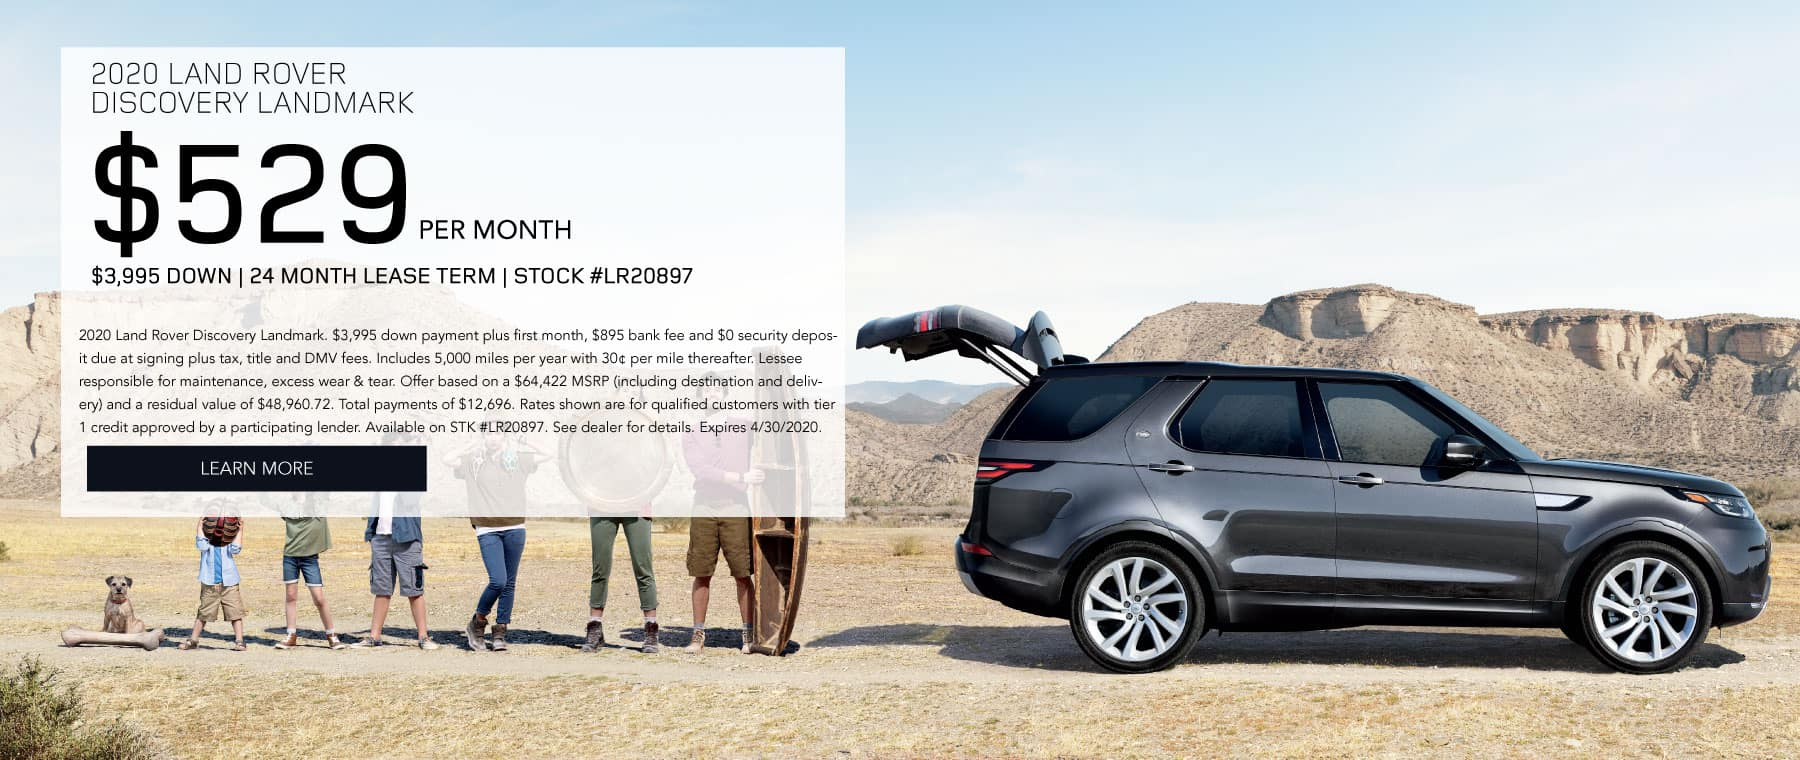 2020 LAND ROVER DISCOVERY LANDMARK. $529 per month. $2995 down. 24 month lease term. Stock #LR20852. $1,000 bonus credit.. 2020 Land Rover Discovery Landmark. $2,995 down payment plus first month, $895 bank fee and $0 security deposit due at signing plus tax, title and DMV fees. Includes 5,000 miles per year with 30¢ per mile thereafter. Lessee responsible for maintenance, excess wear & tear. Offer based on a $65,012 MSRP (including destination and delivery) and a residual value of $50,059.24. Total payments of $12,696. Rates shown are for qualified customers with tier 1 credit approved by a participating lender. Available on STK #LR20852. See dealer for details. Expires 3/2/2020.. Click to learn more.. Gold Discovery parked in a field